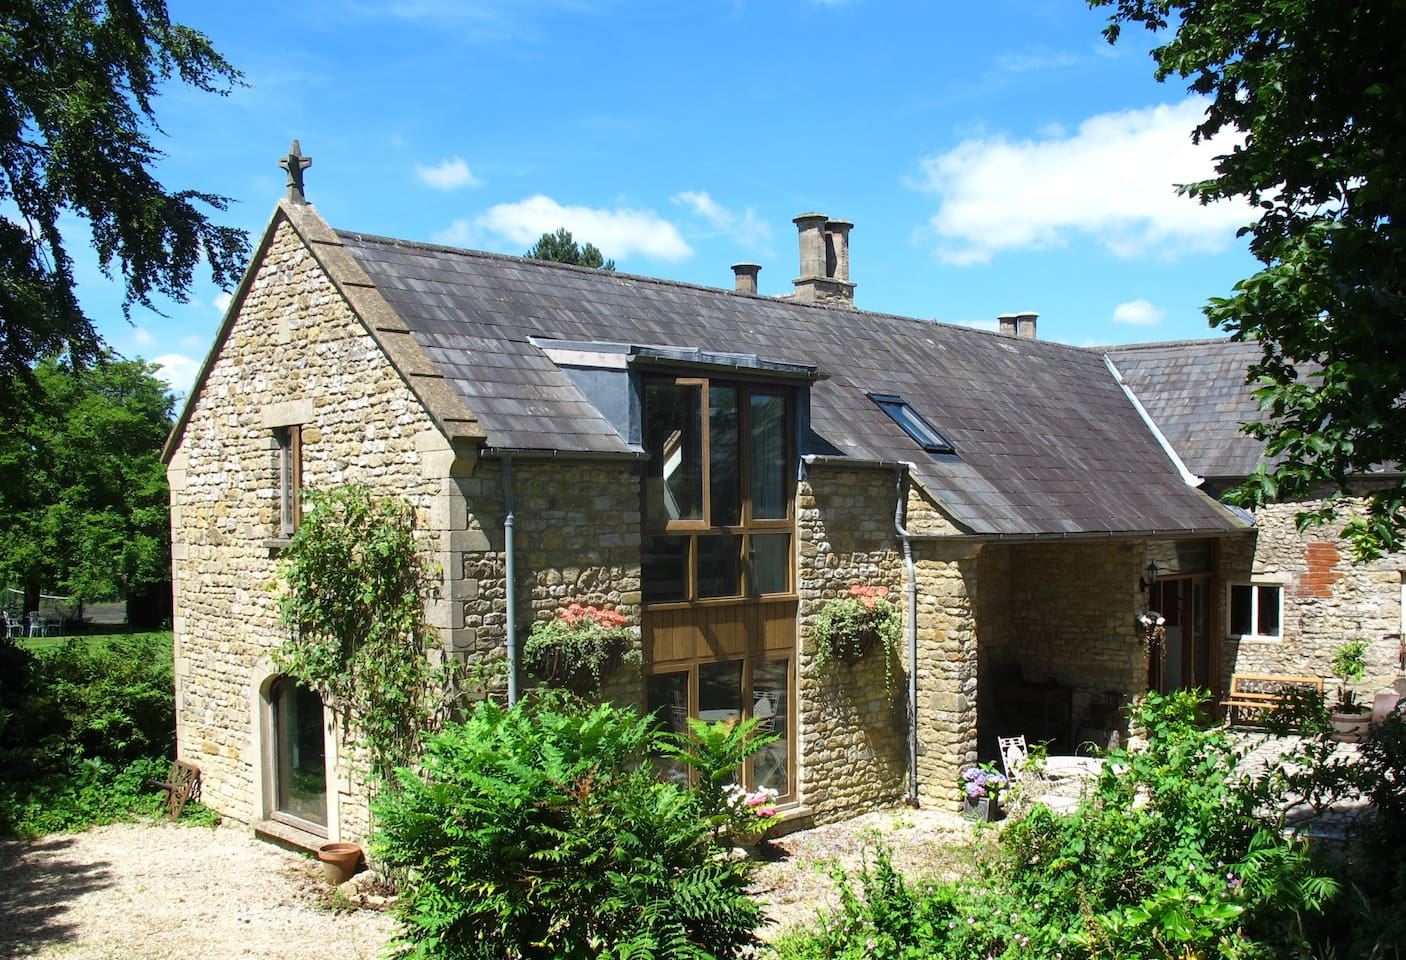 The Old Rectory Retreat. ...luxury in a secluded setting